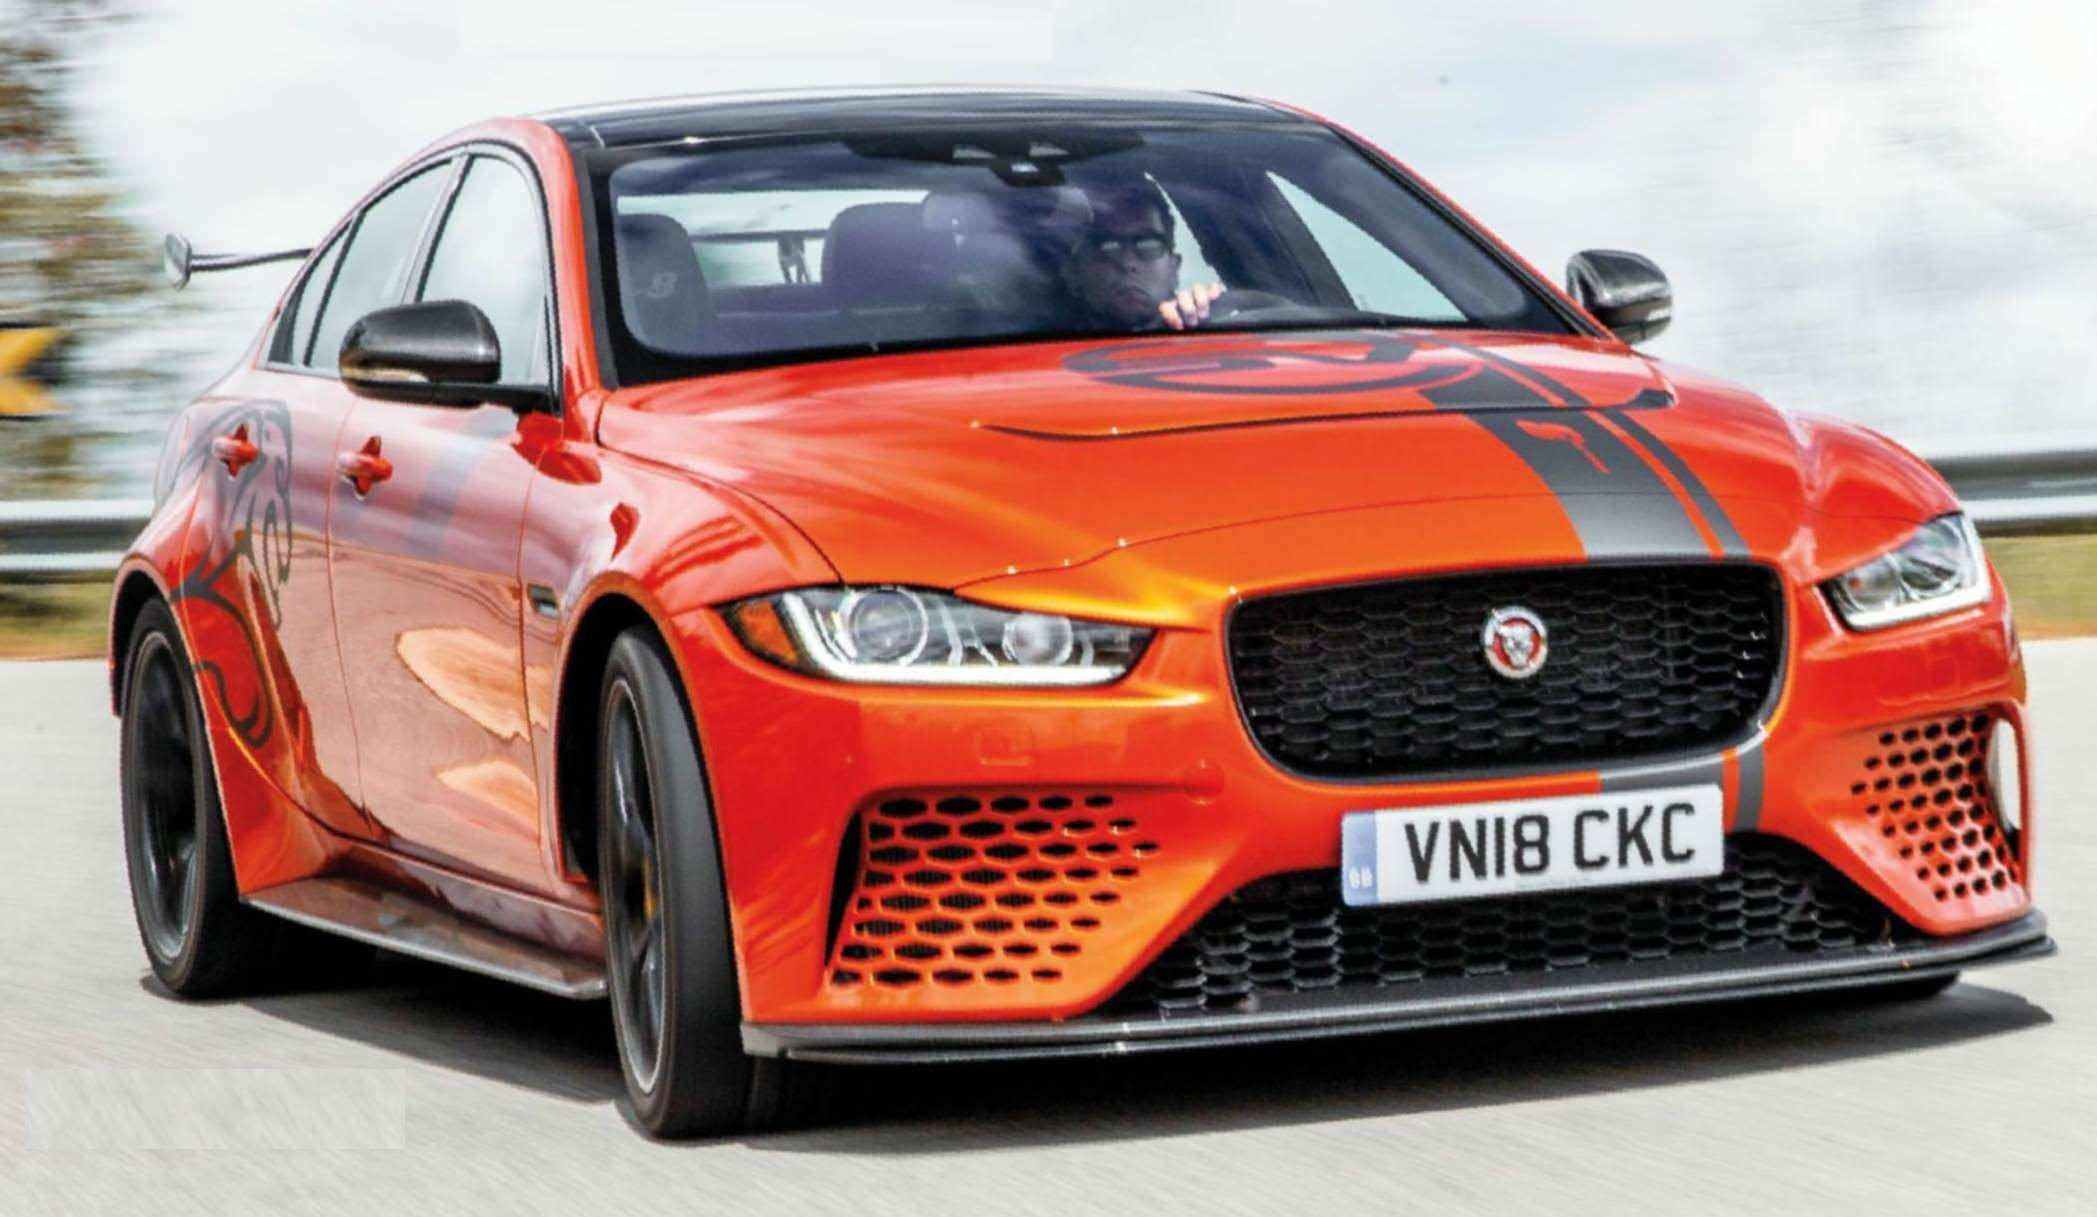 45 A 2019 Jaguar Project 8 Price